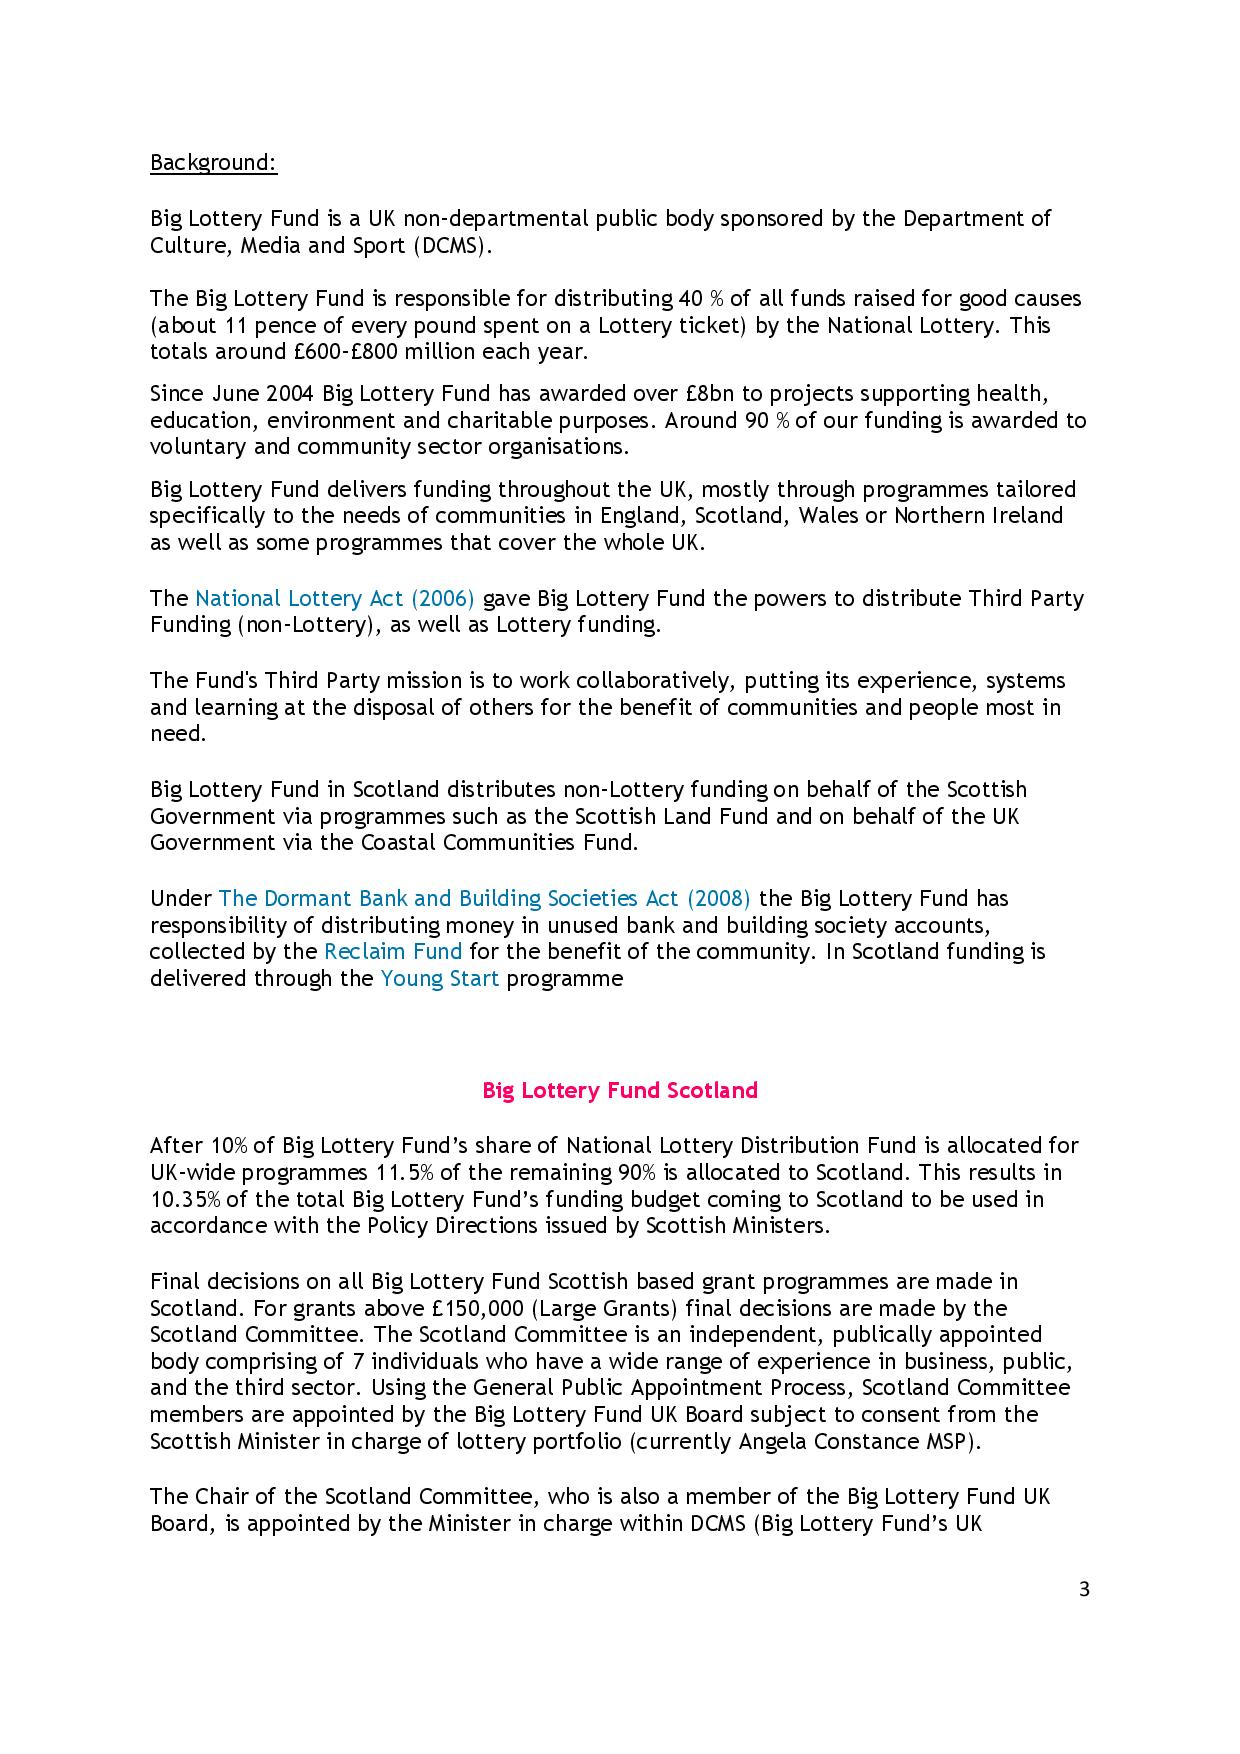 Big_Lottery_Fund_Scotland_Information_Briefing-page-003.jpg